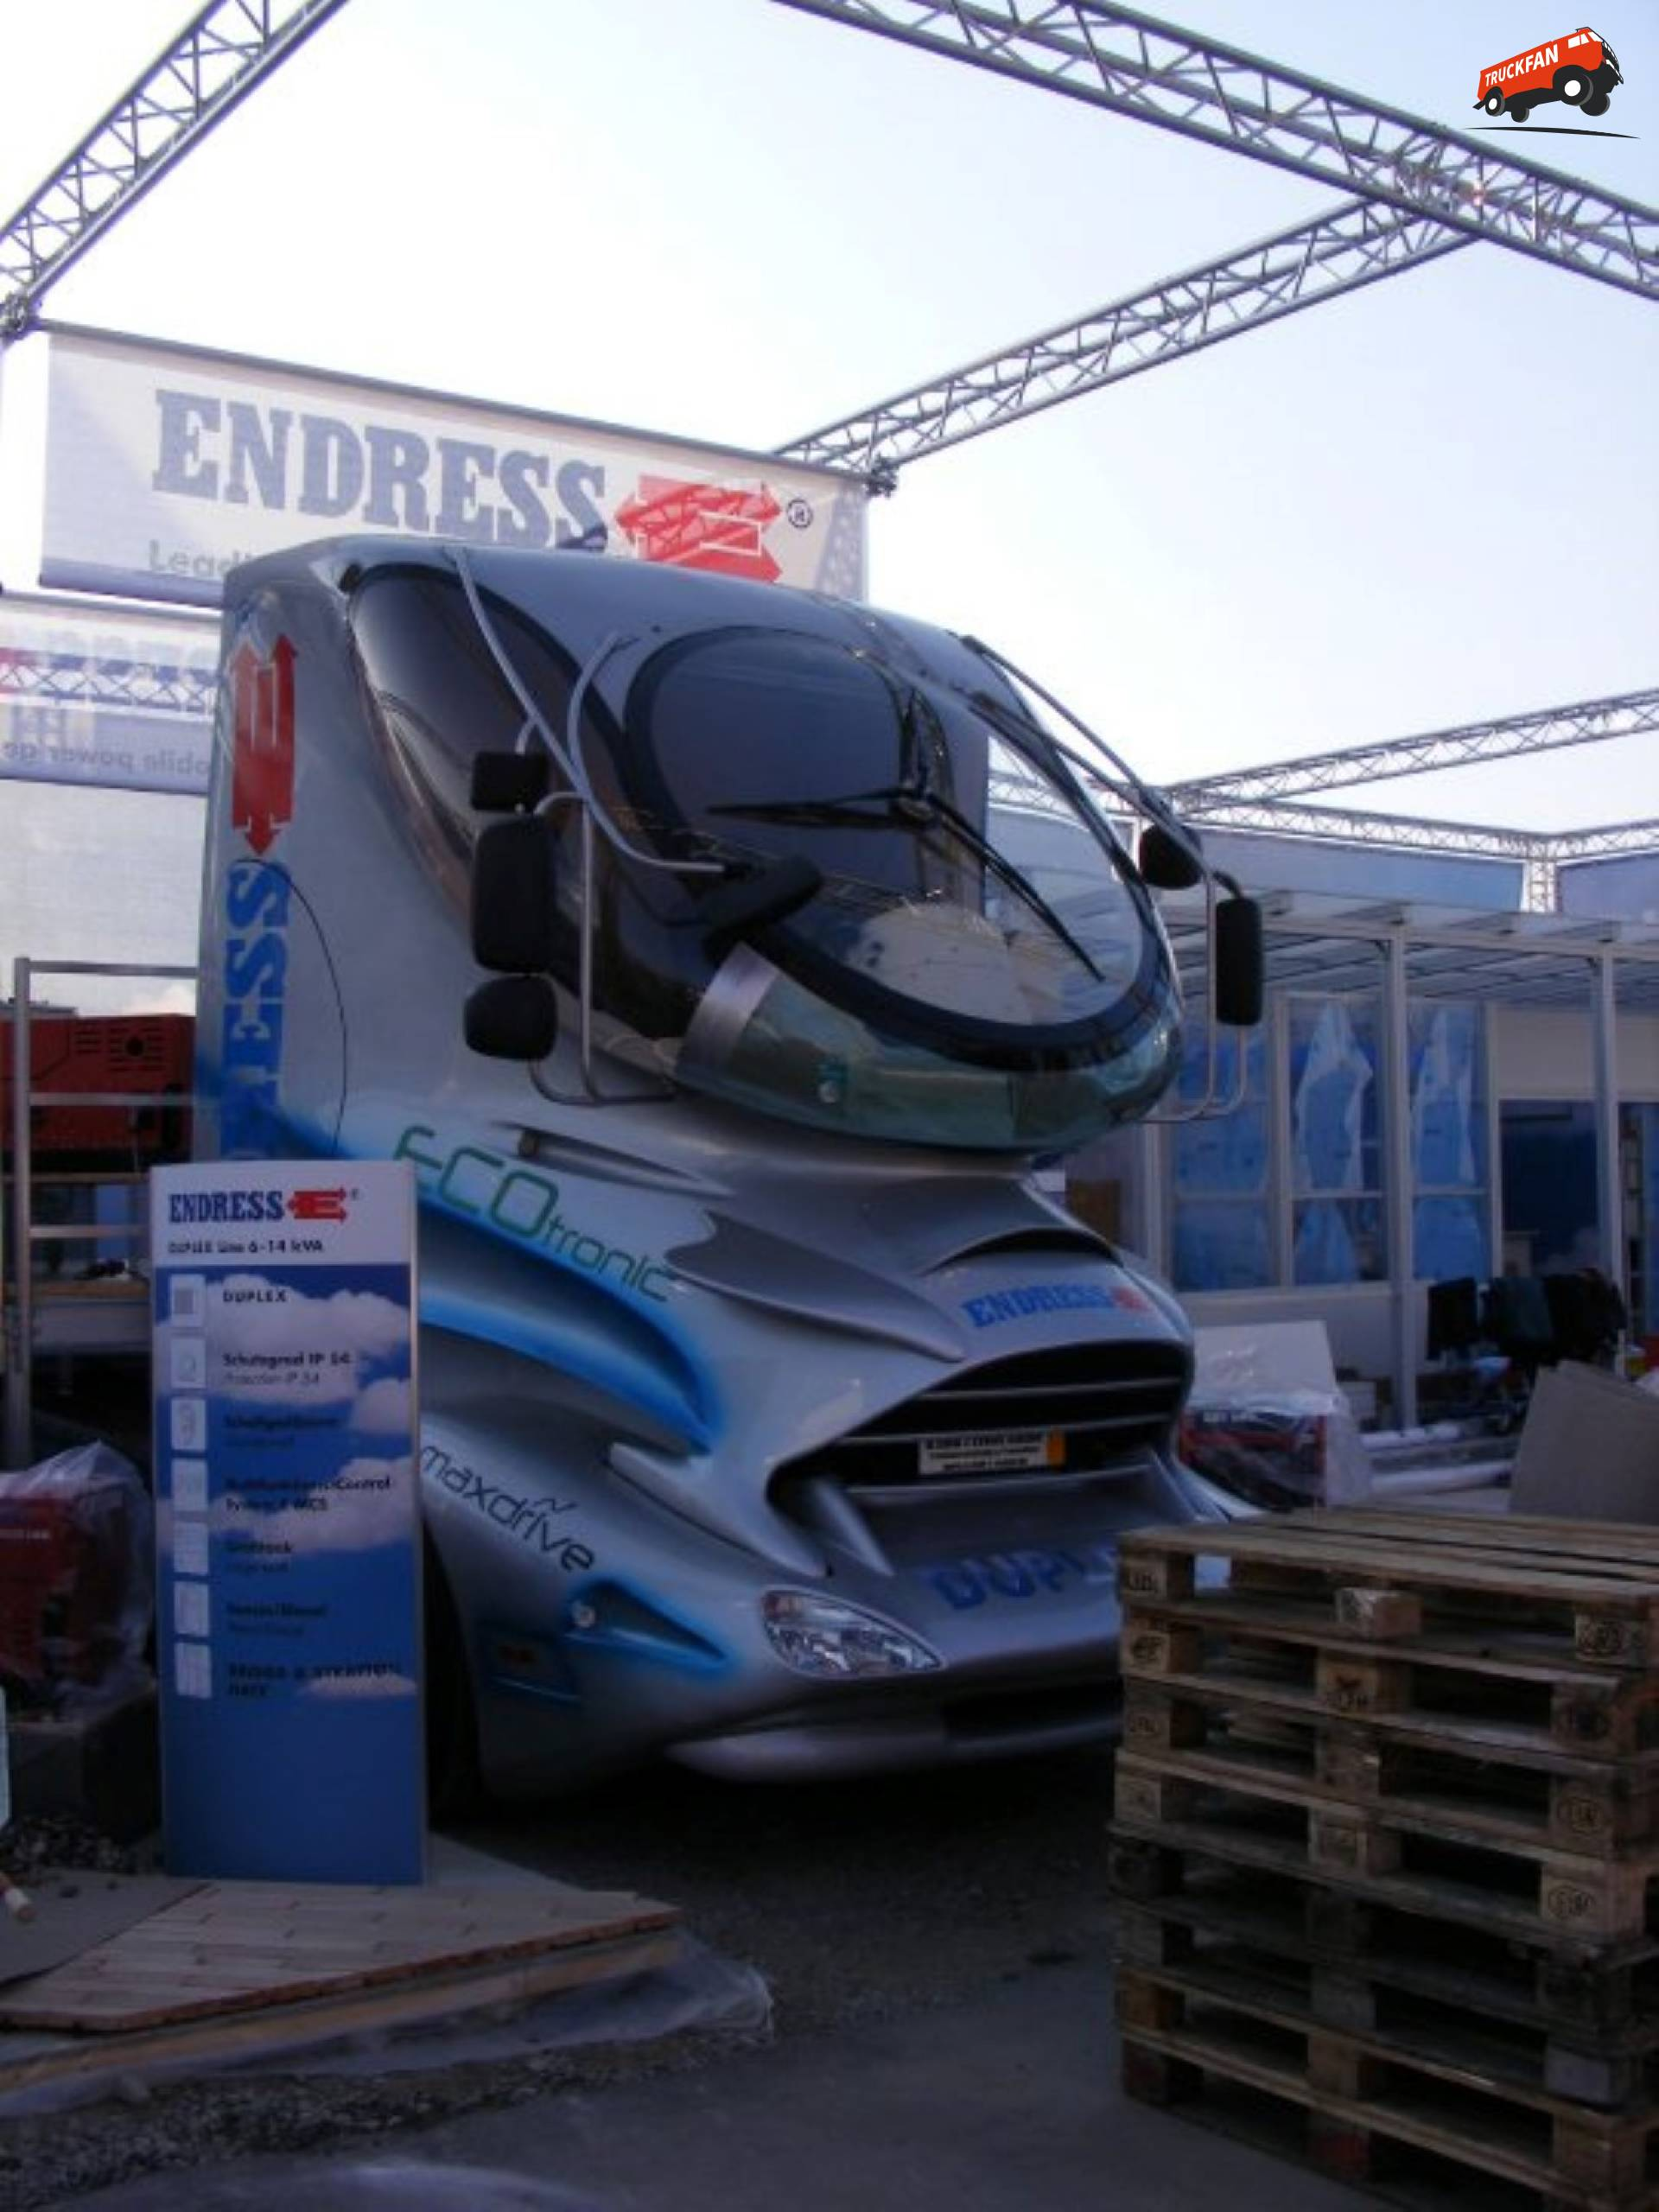 Colani showtruck